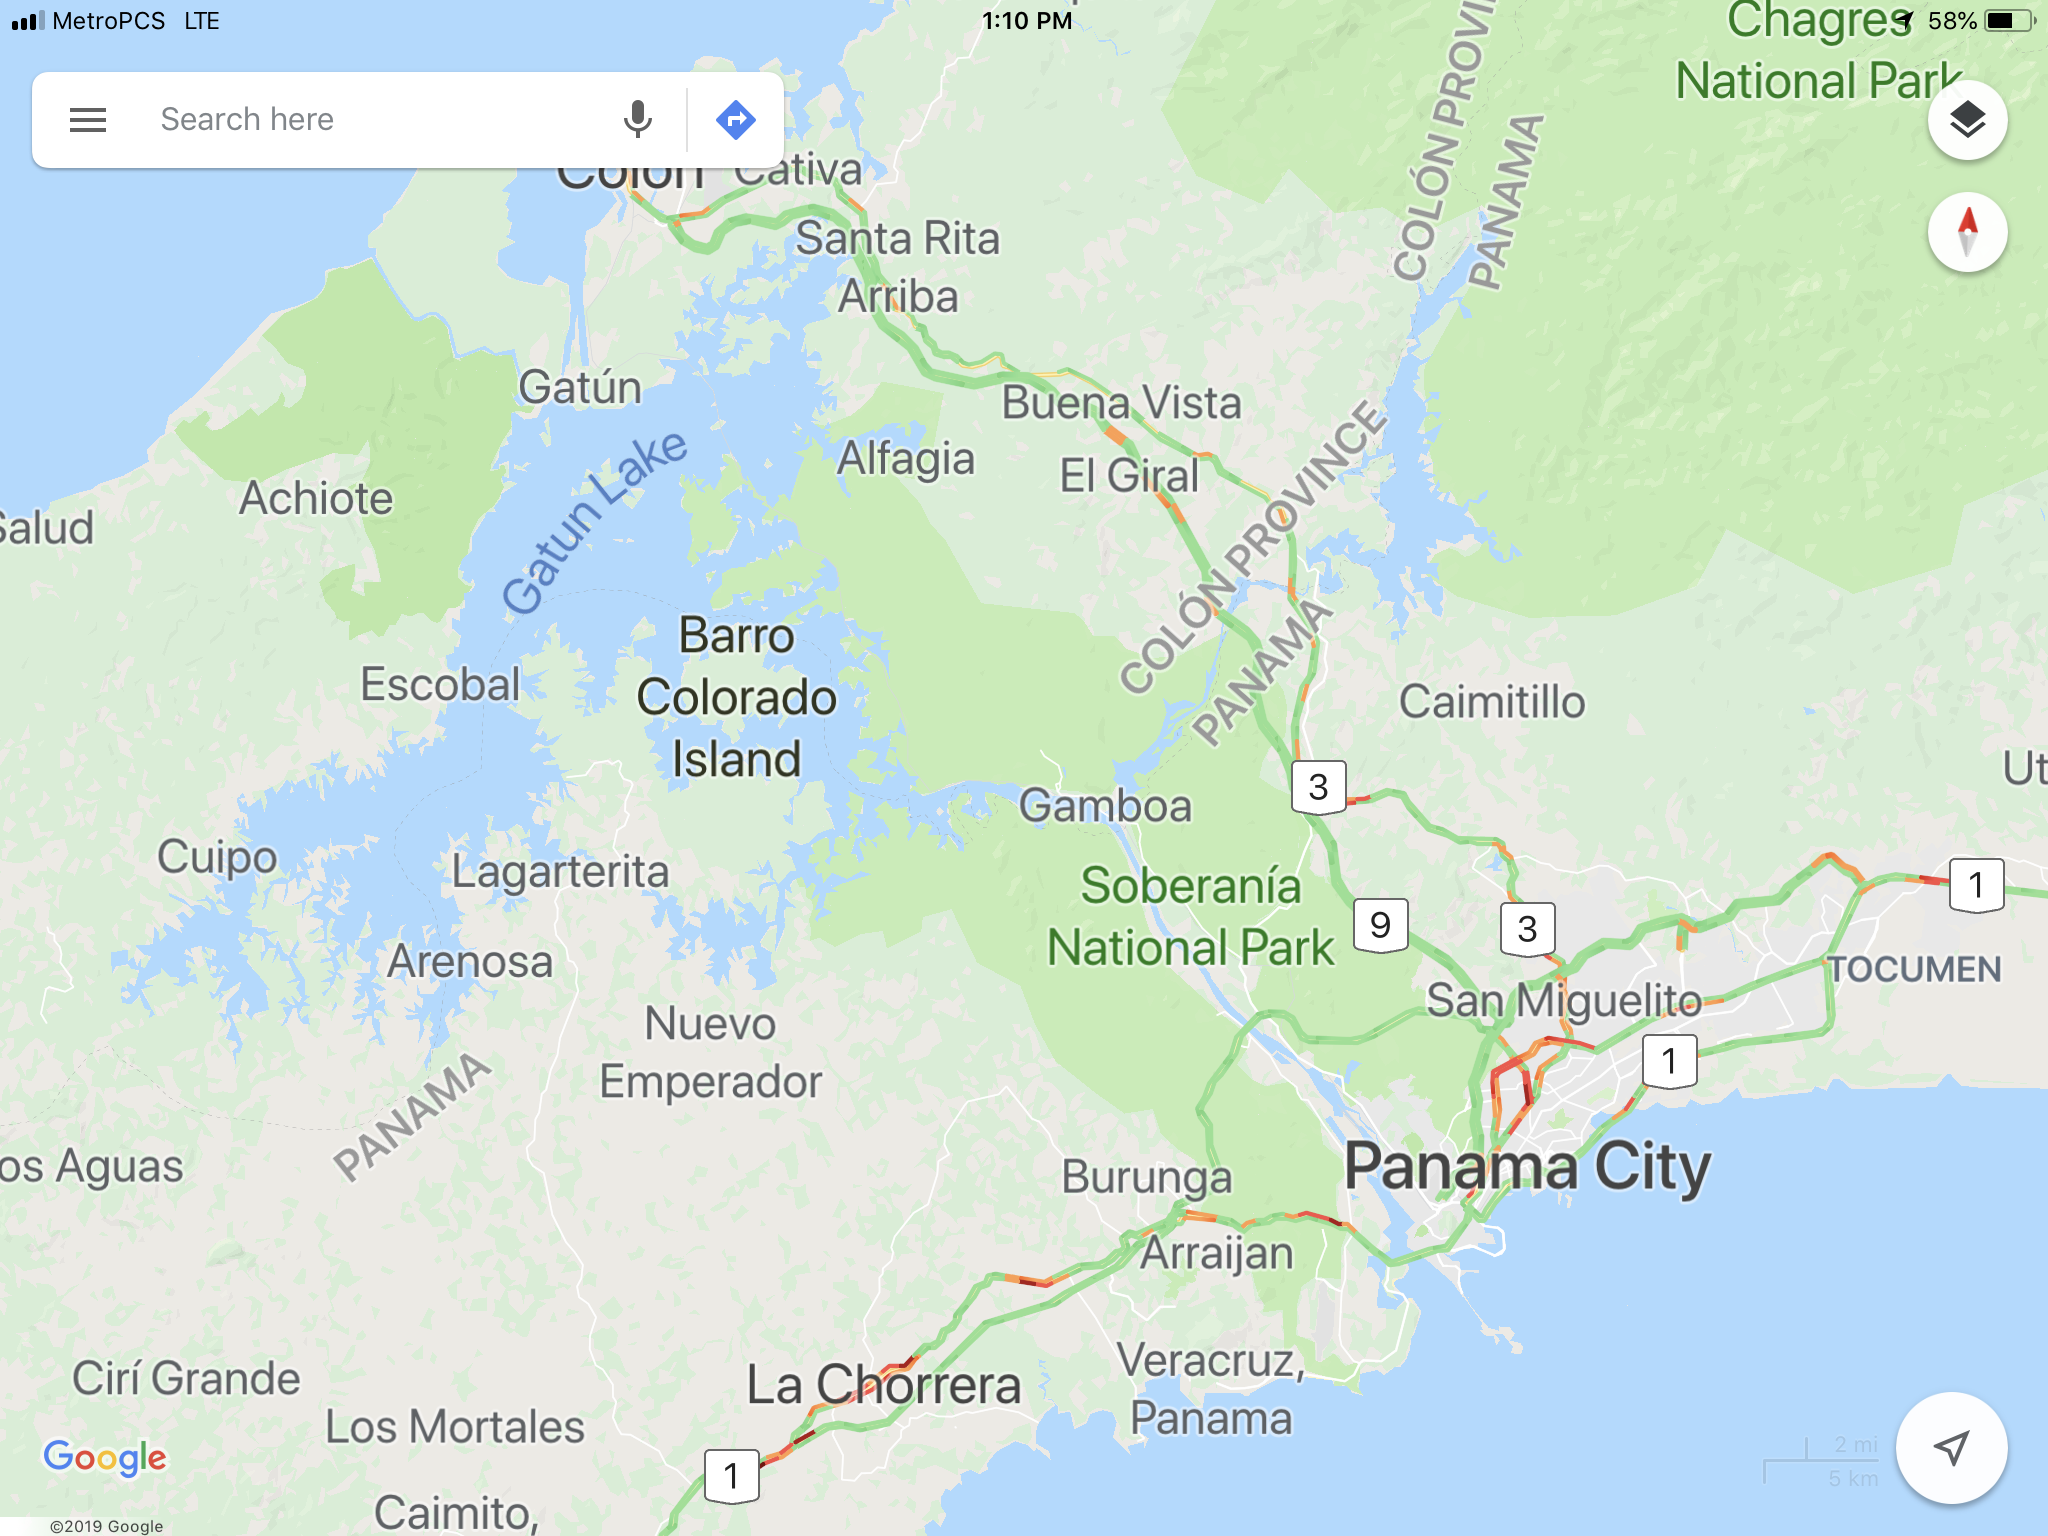 790cbbfc-fc6e-4480-a780-c9e067818cdd-png.52294_Crossing the Panama canal? With a vehicle? Possible/alternatives?_South America_Squat the Planet_10:17 AM